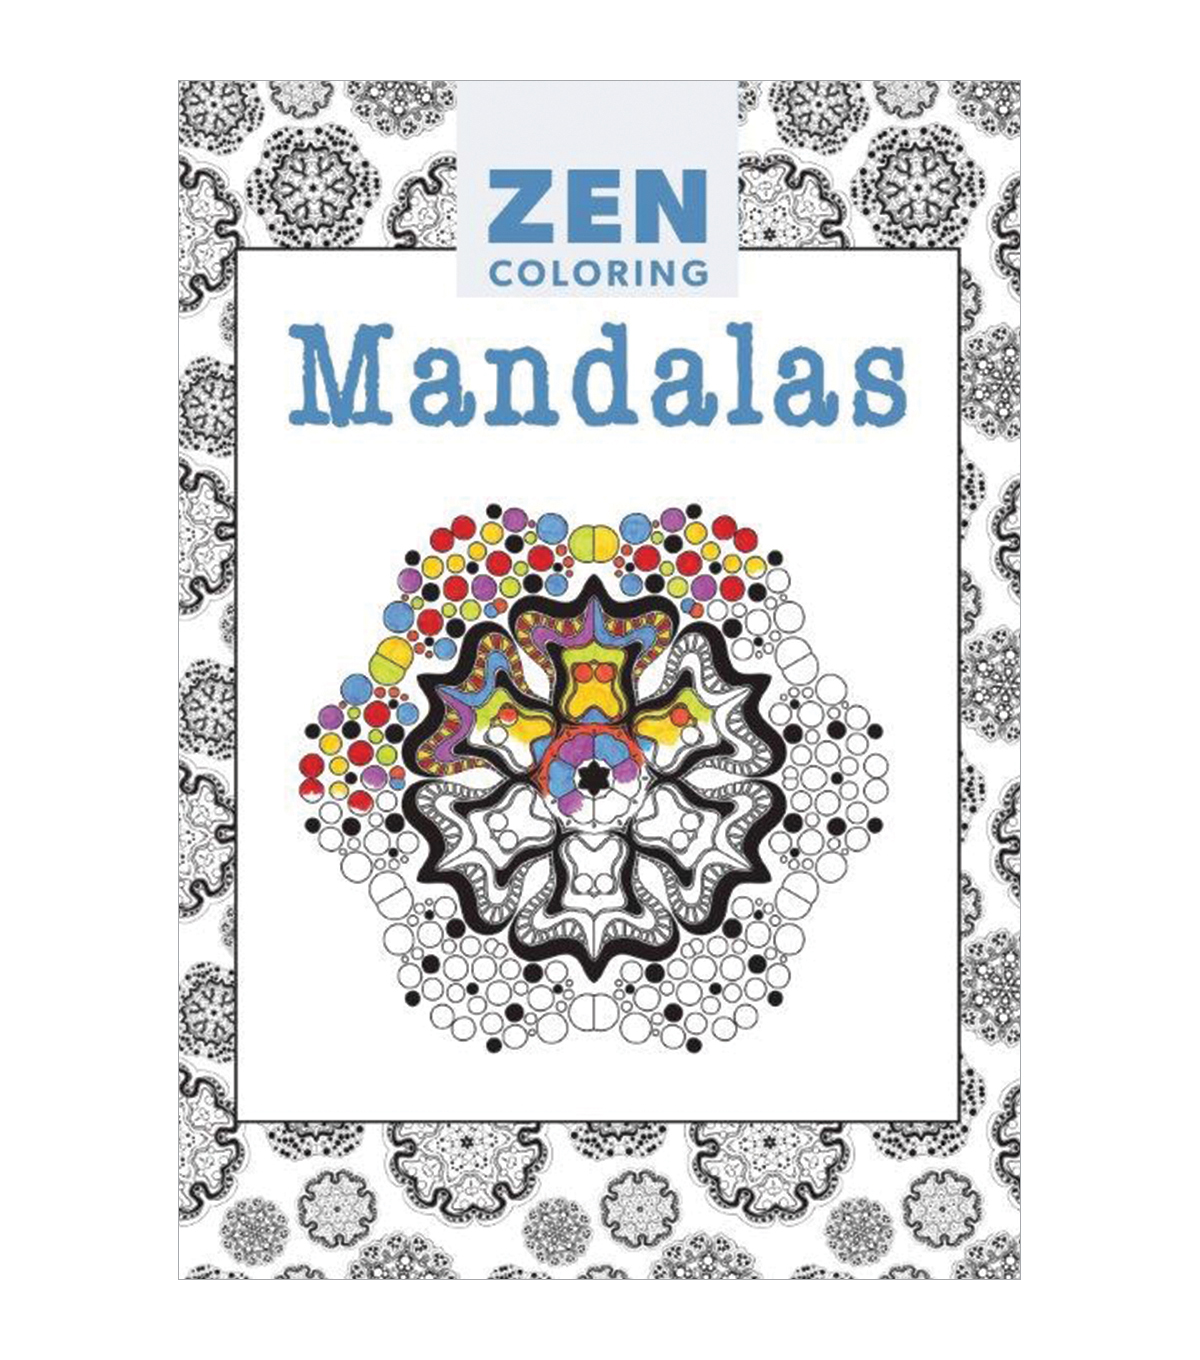 Adult Coloring Book-Guild of Master Craftsman Zen Coloring Mandalas